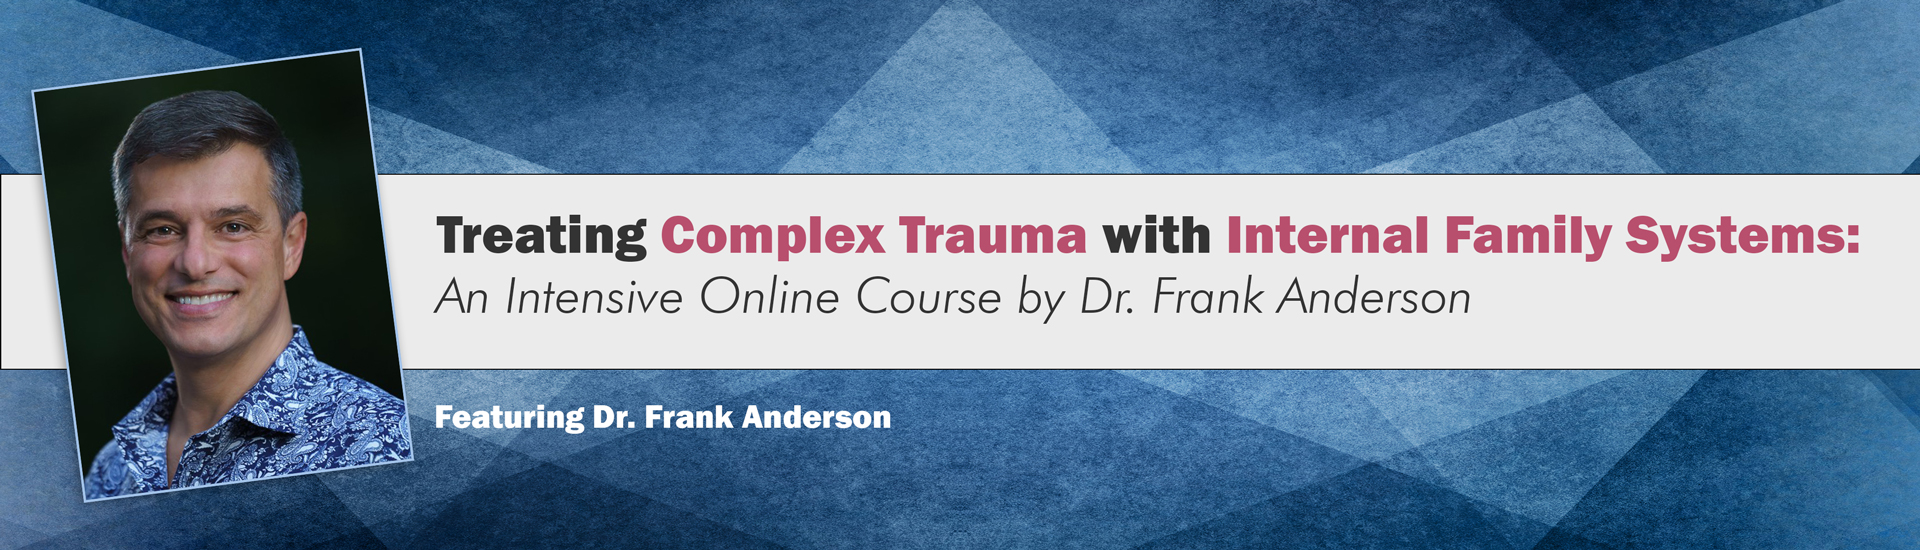 Treating Complex Trauma with Internal Family Systems (IFS): An Intensive Online Course by Dr. Frank Anderson